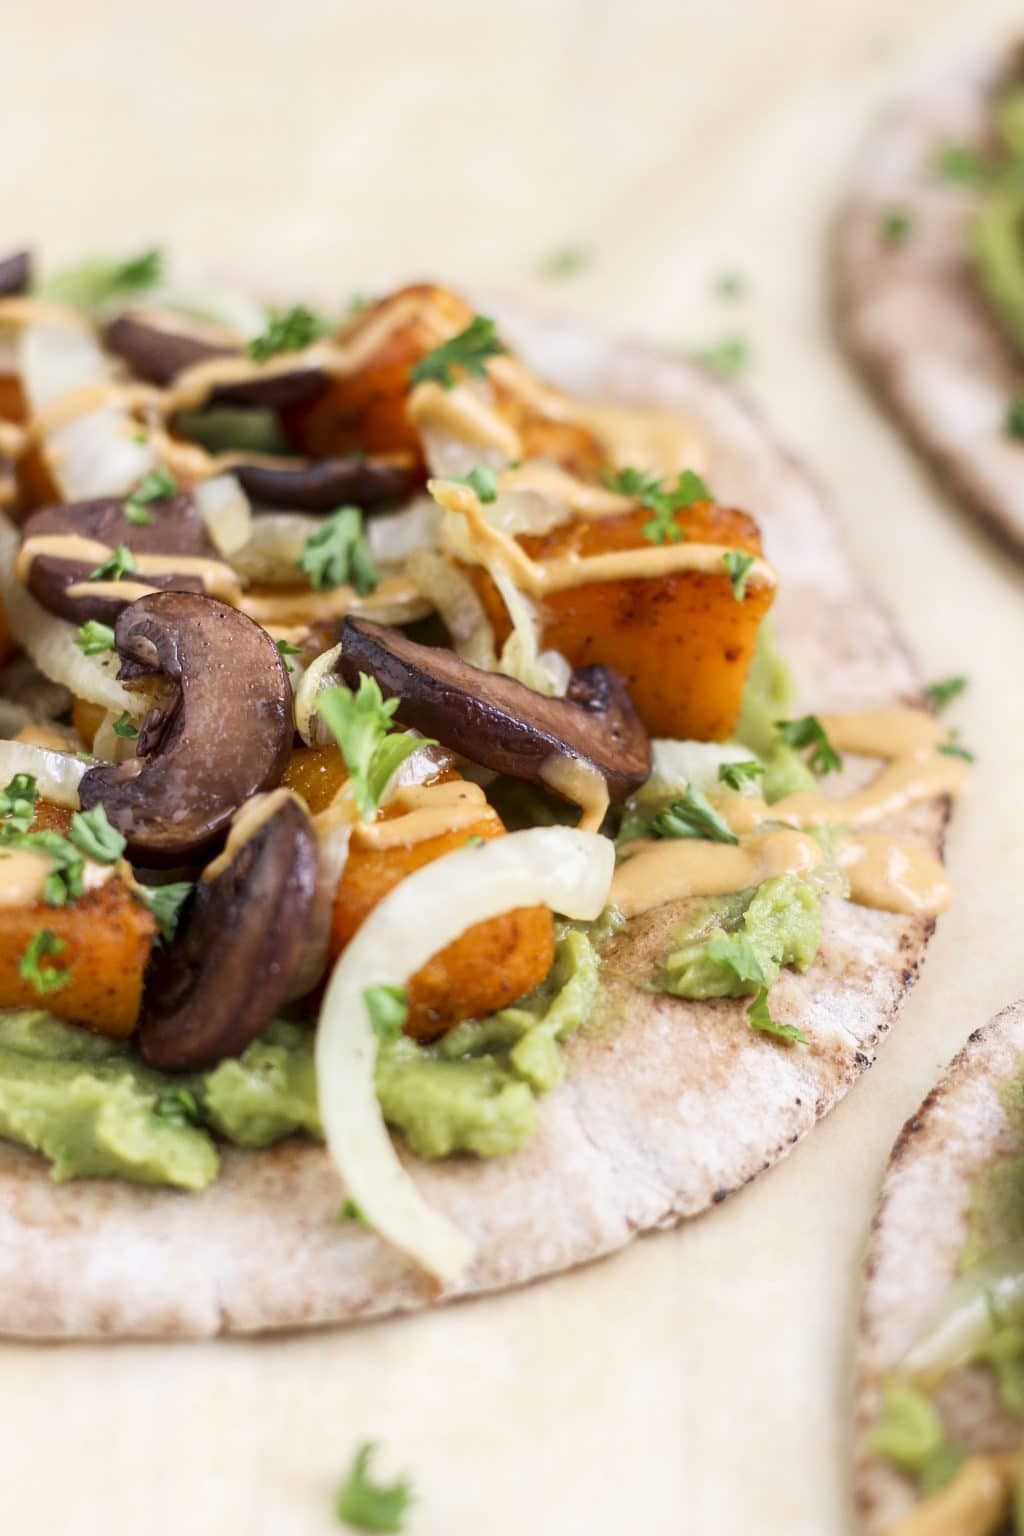 A close up view of a pita topped with roasted vegetables, mashed avocado, and sauce.